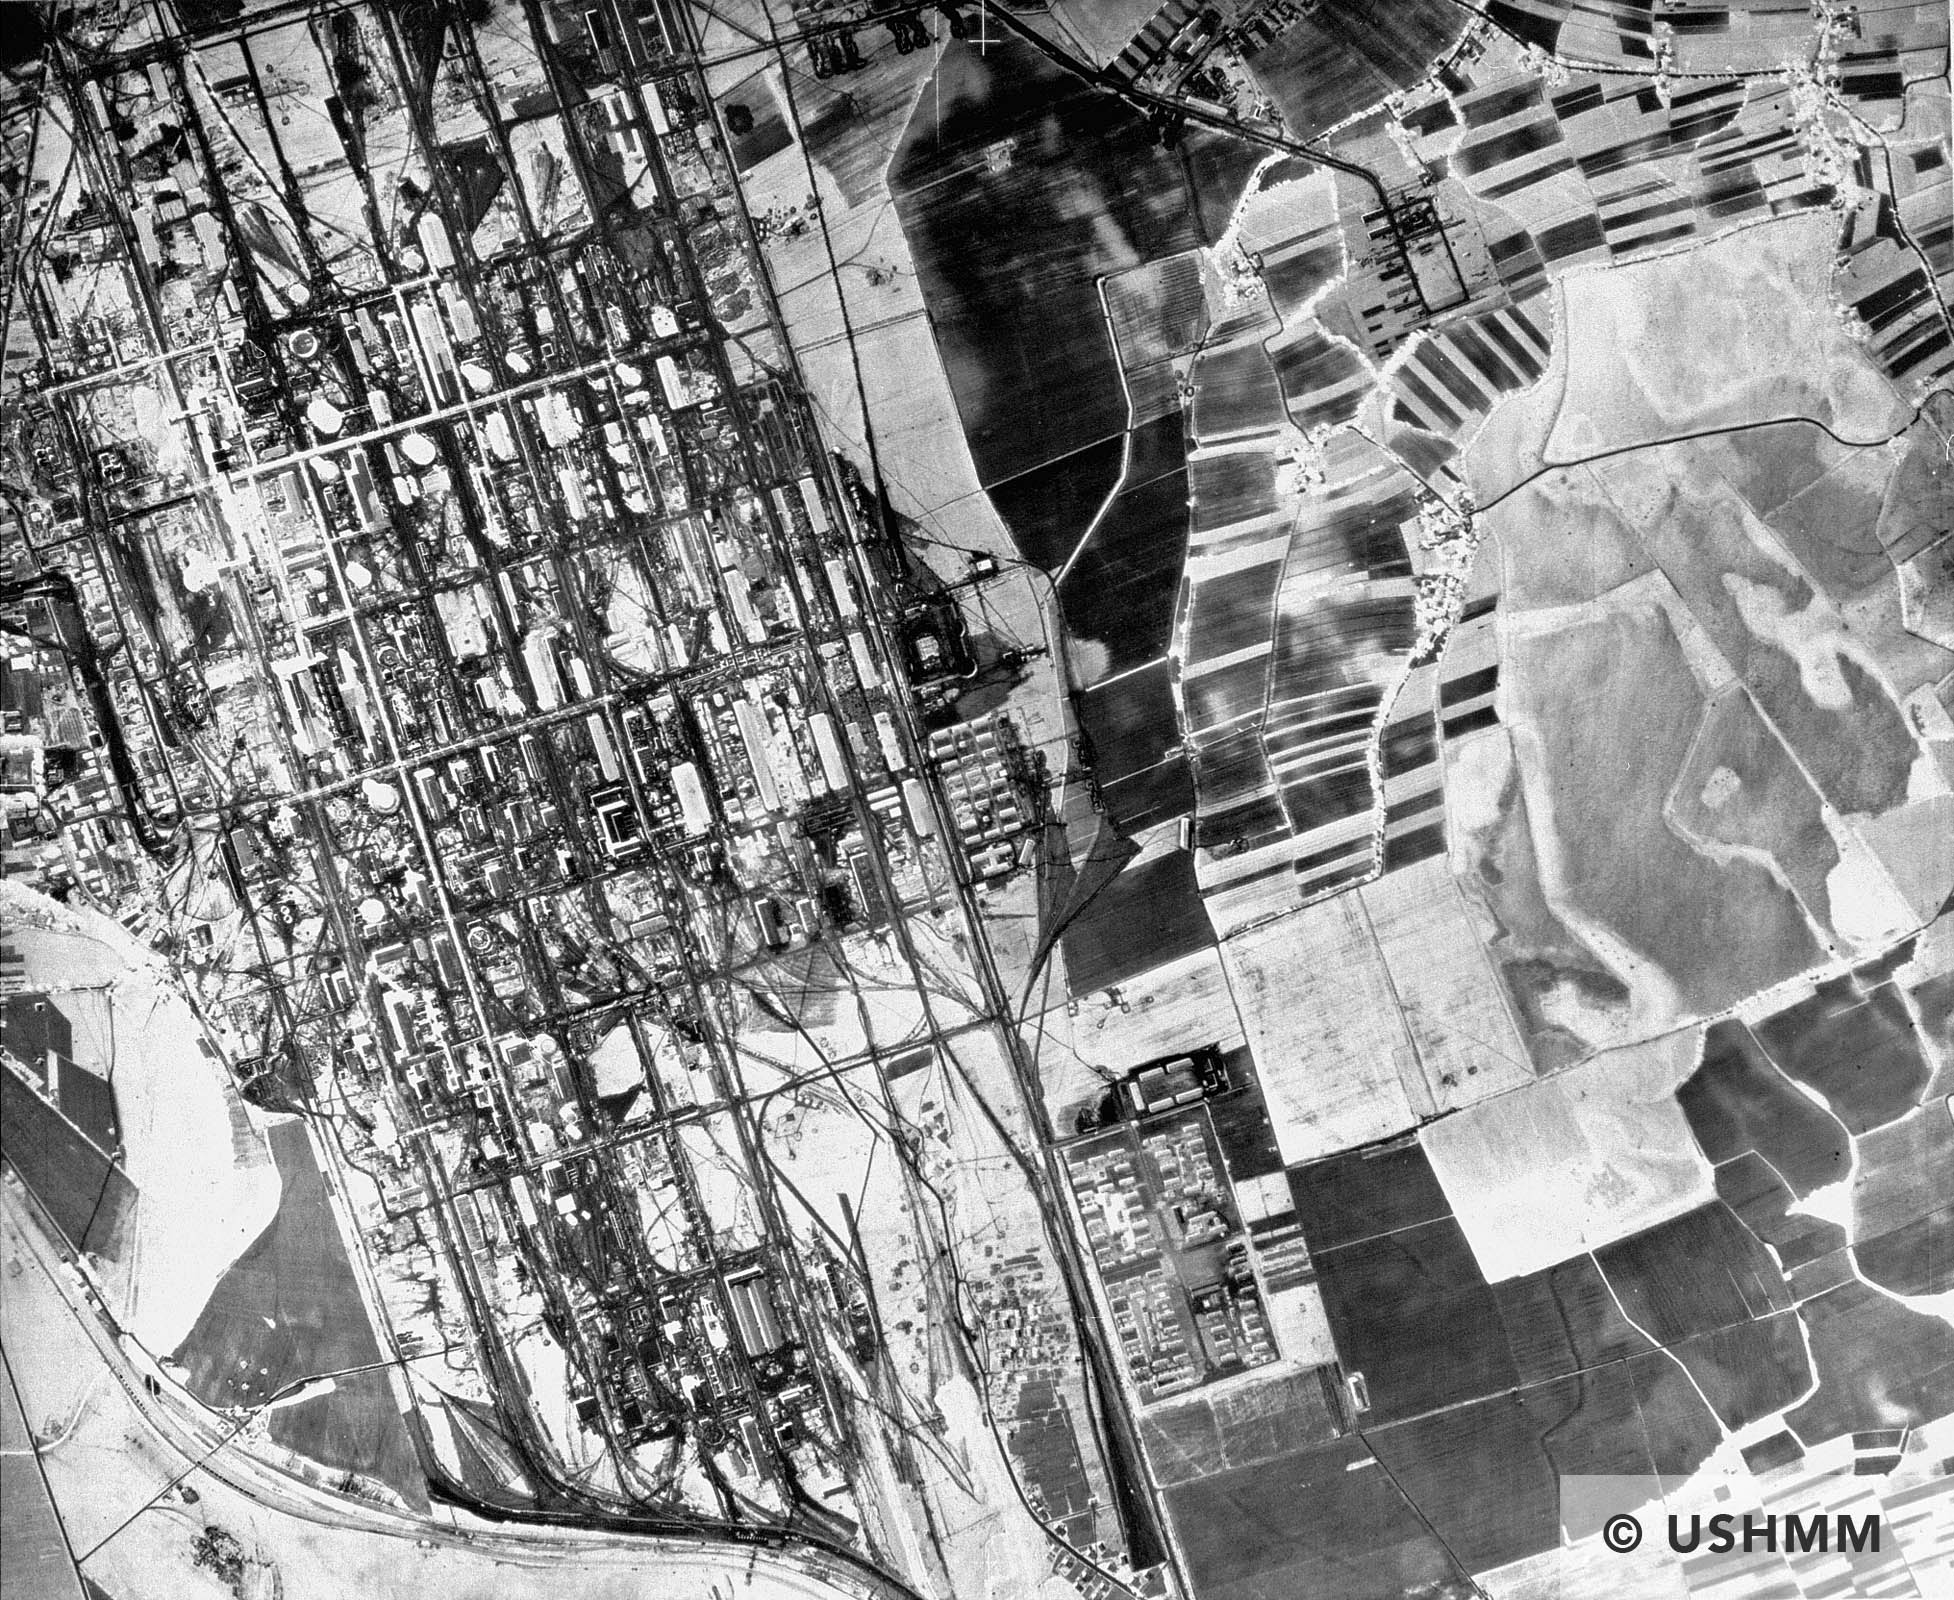 Aerial photograph of the Auschwitz area showing a partial view of the I.G. Farben plant and the associated Monowitz concentration camp. 31 May 1944 USHMM 04350